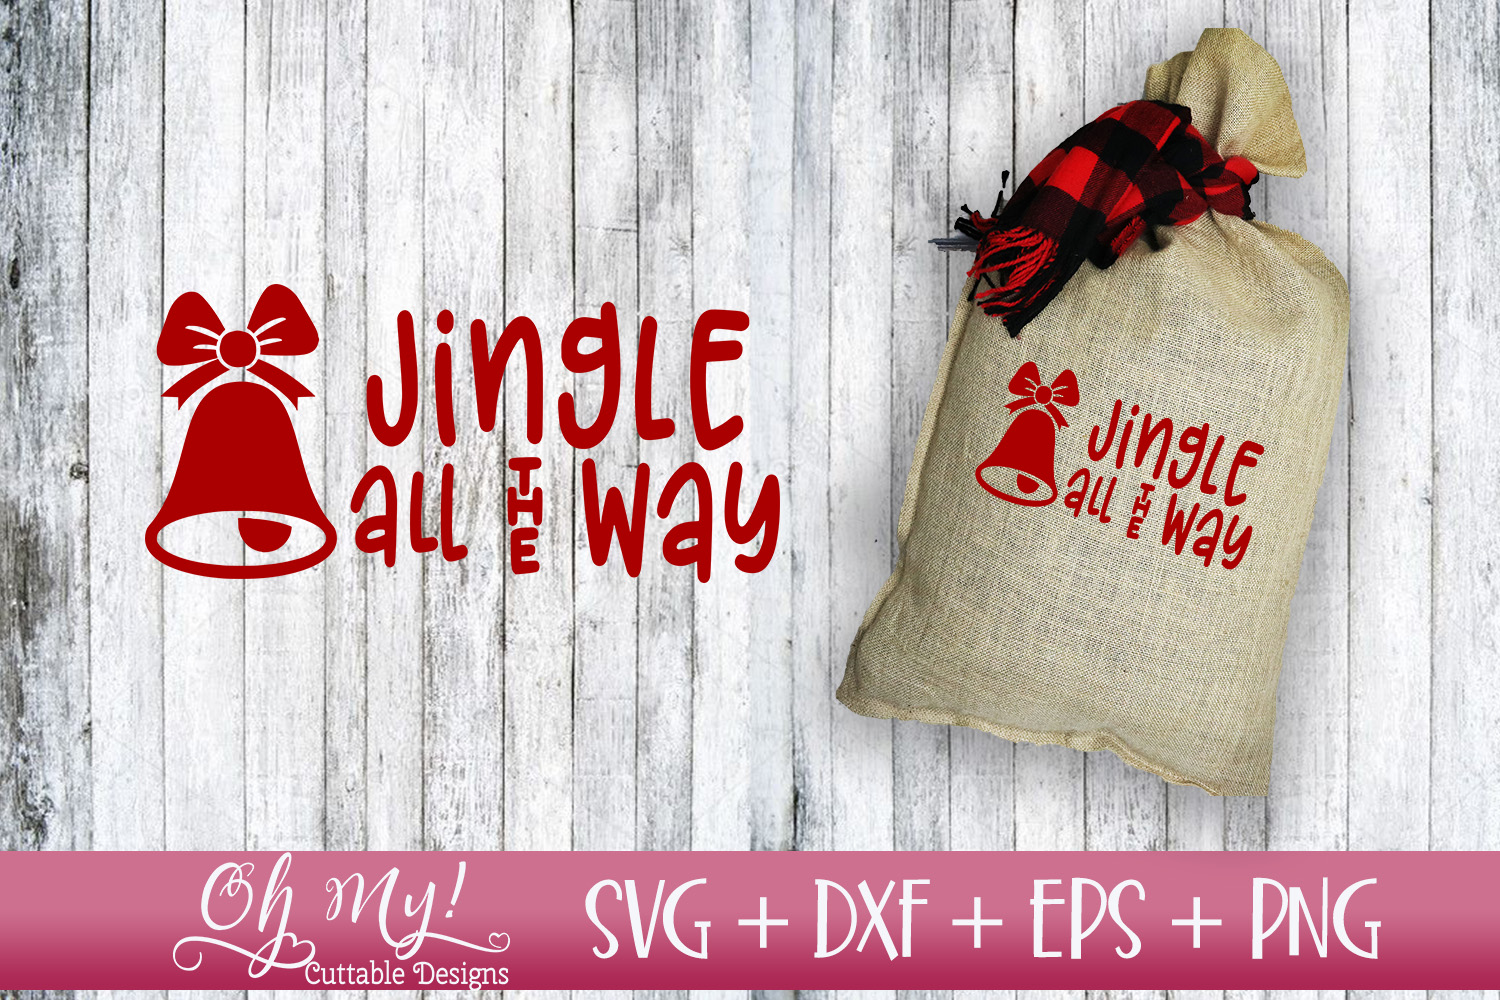 Jingle All The Way - SVG EPS DXF Cutting File example image 1